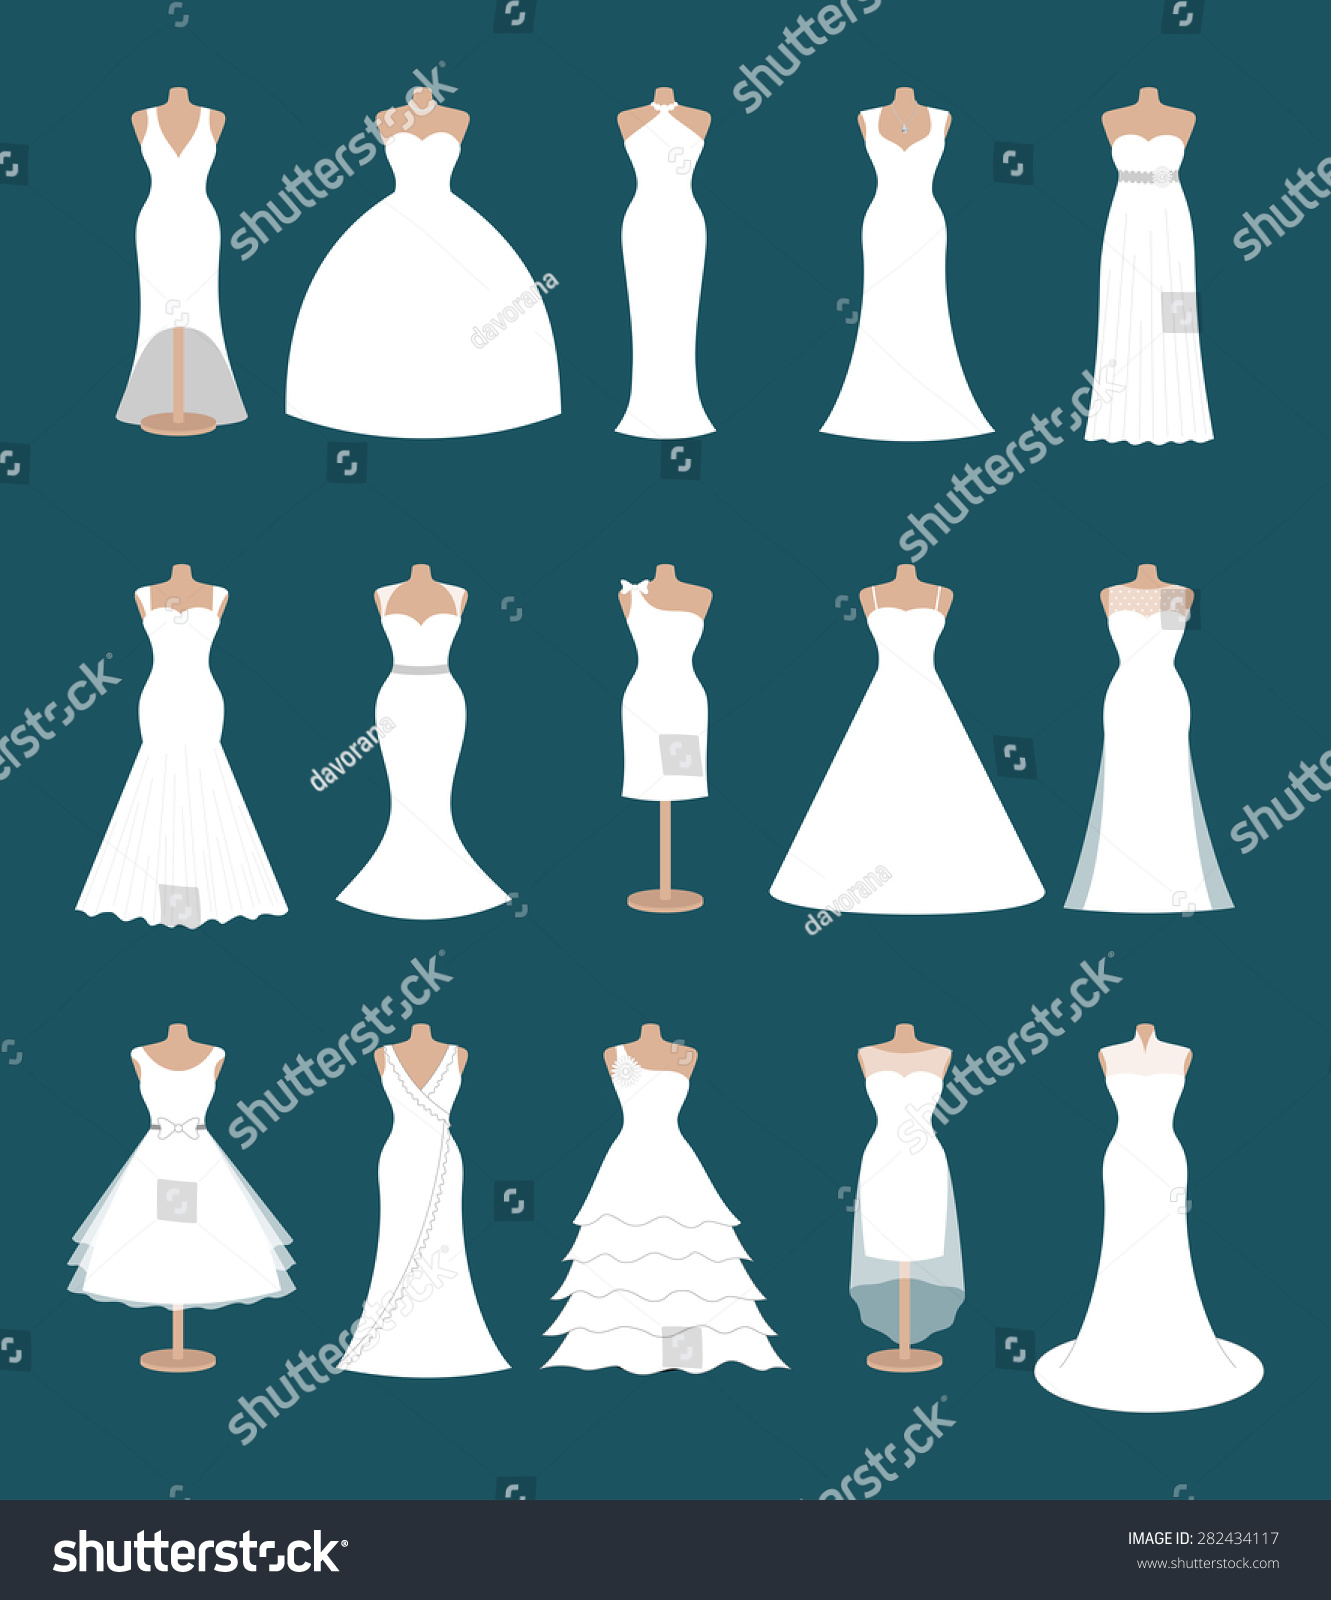 23 popular womens dress style names for Different types of design styles